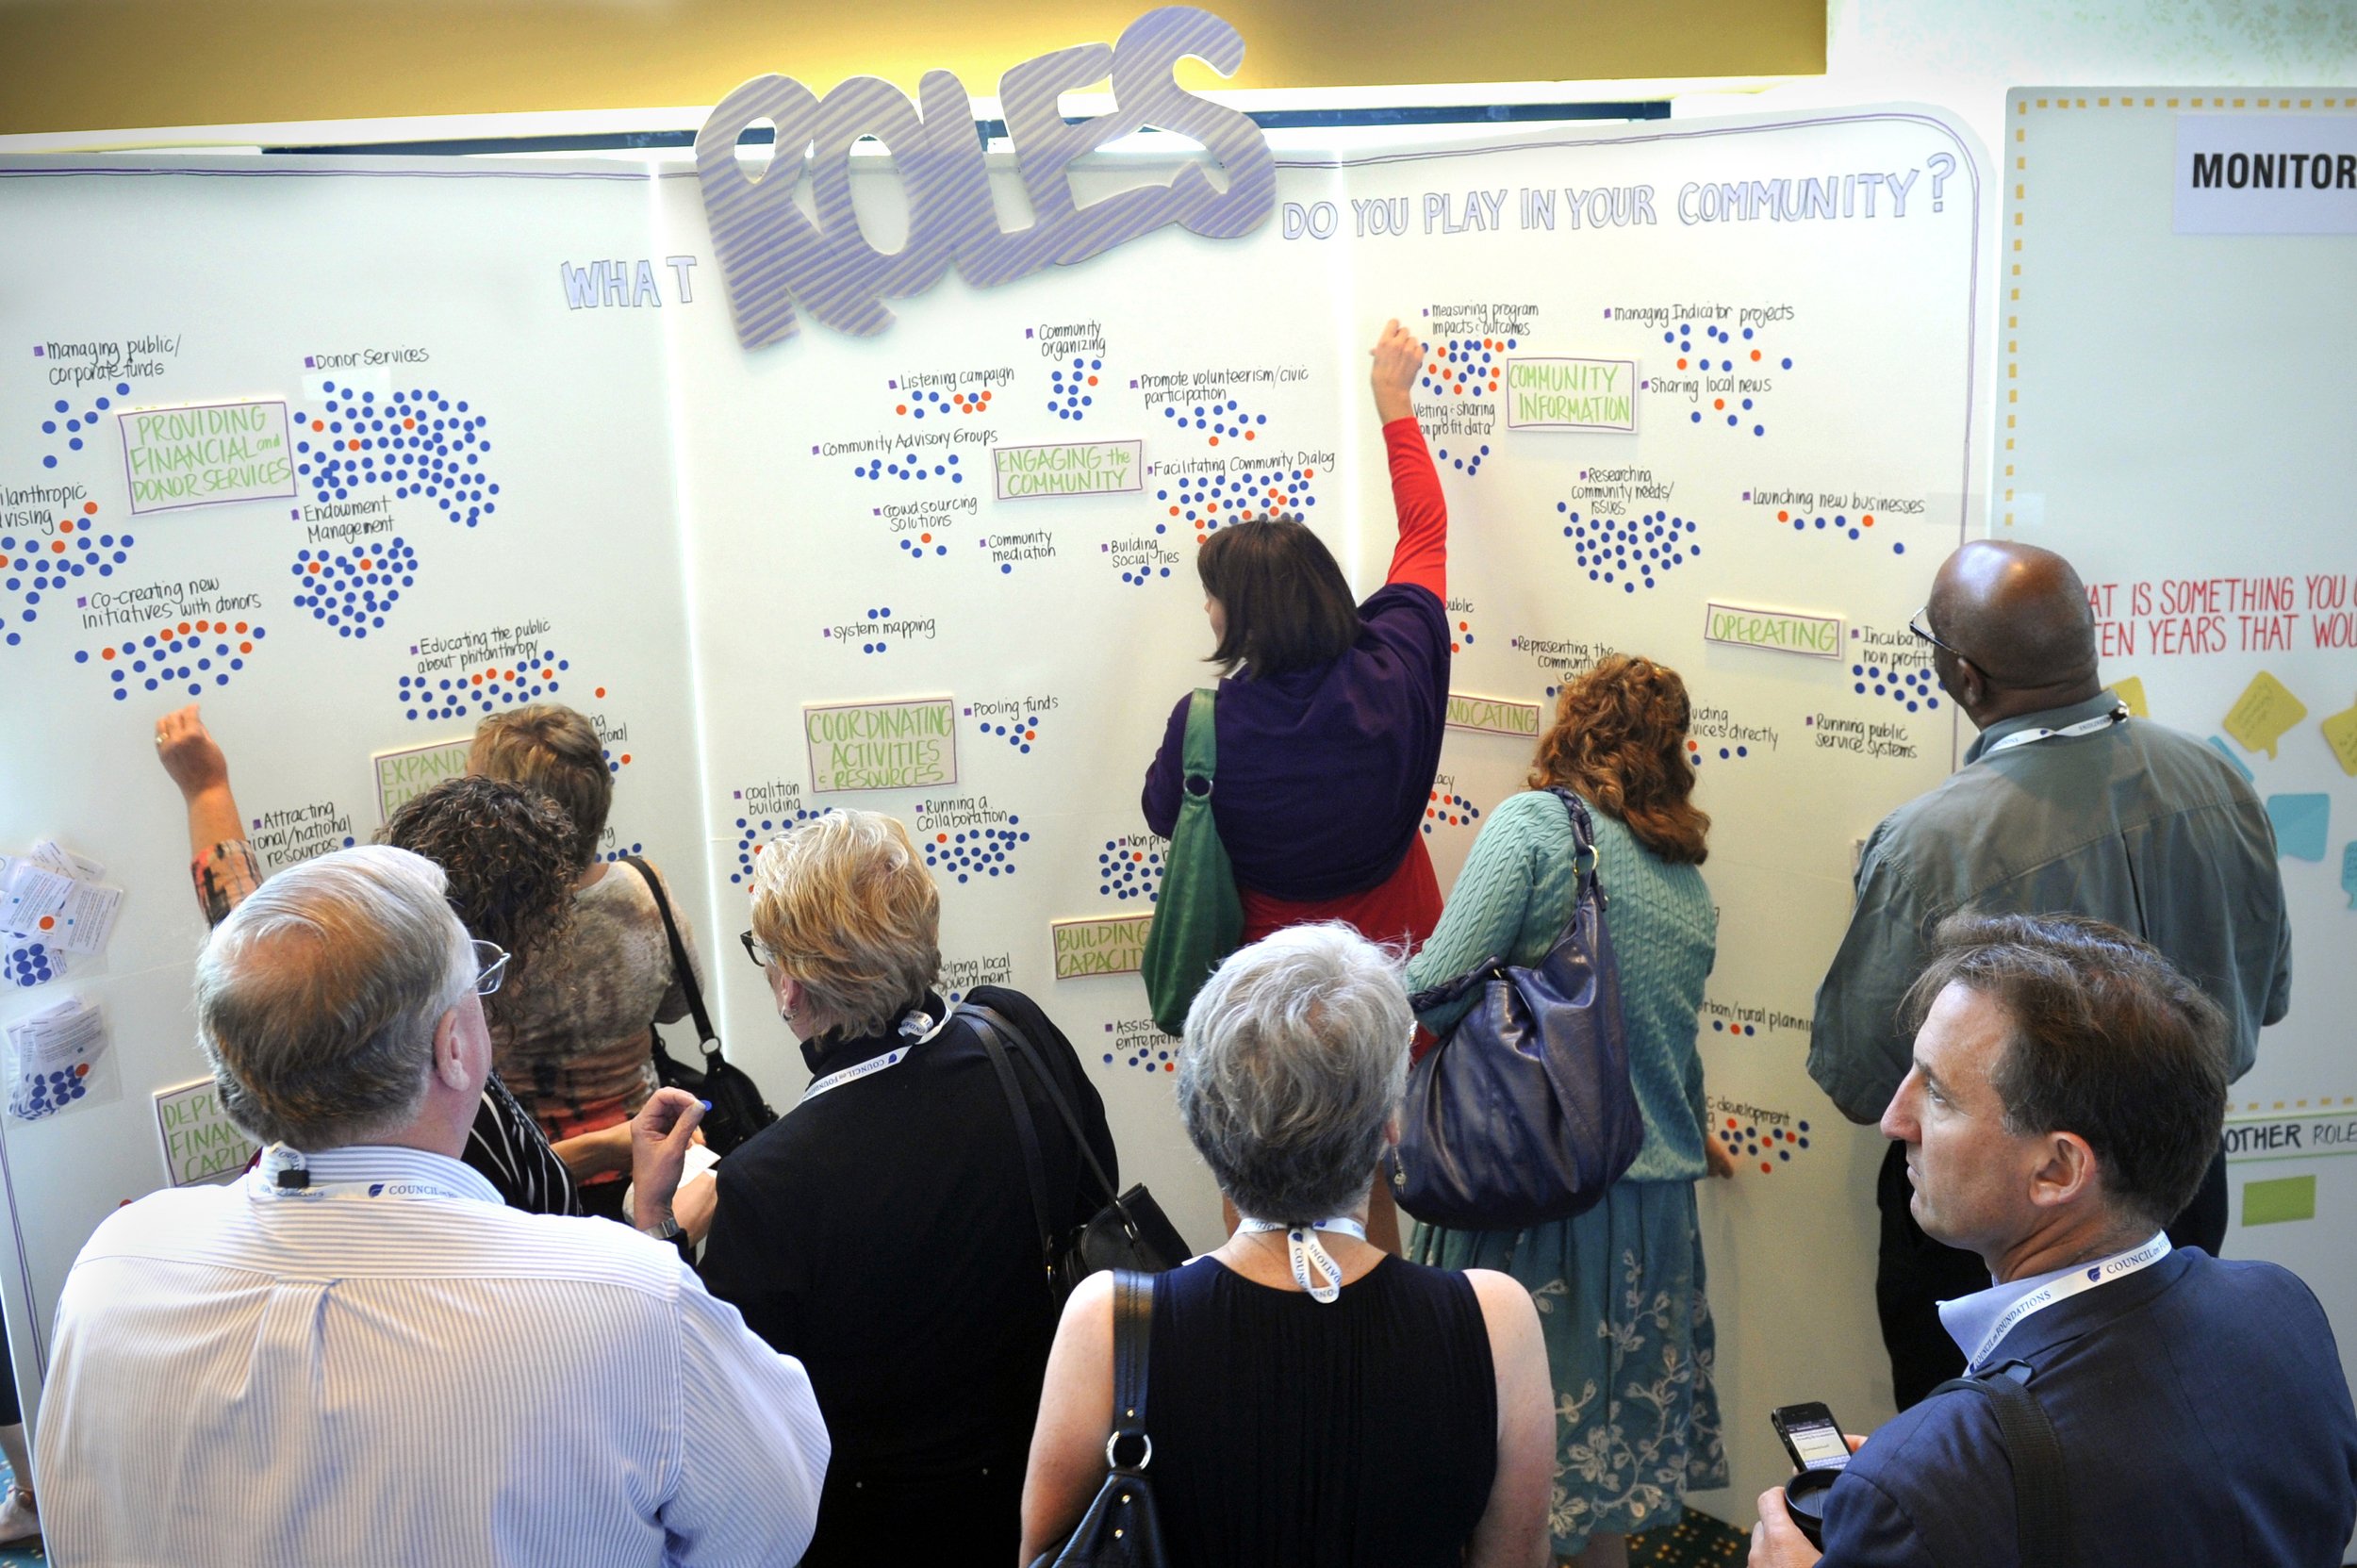 """The 16' X 8' """"Innovation Wall"""" provided an easy way for conference attendees to identify their roles within their communities. In addition to fostering group interaction, the resulting graphic display provided an interesting demographic breakdown of the attendees."""